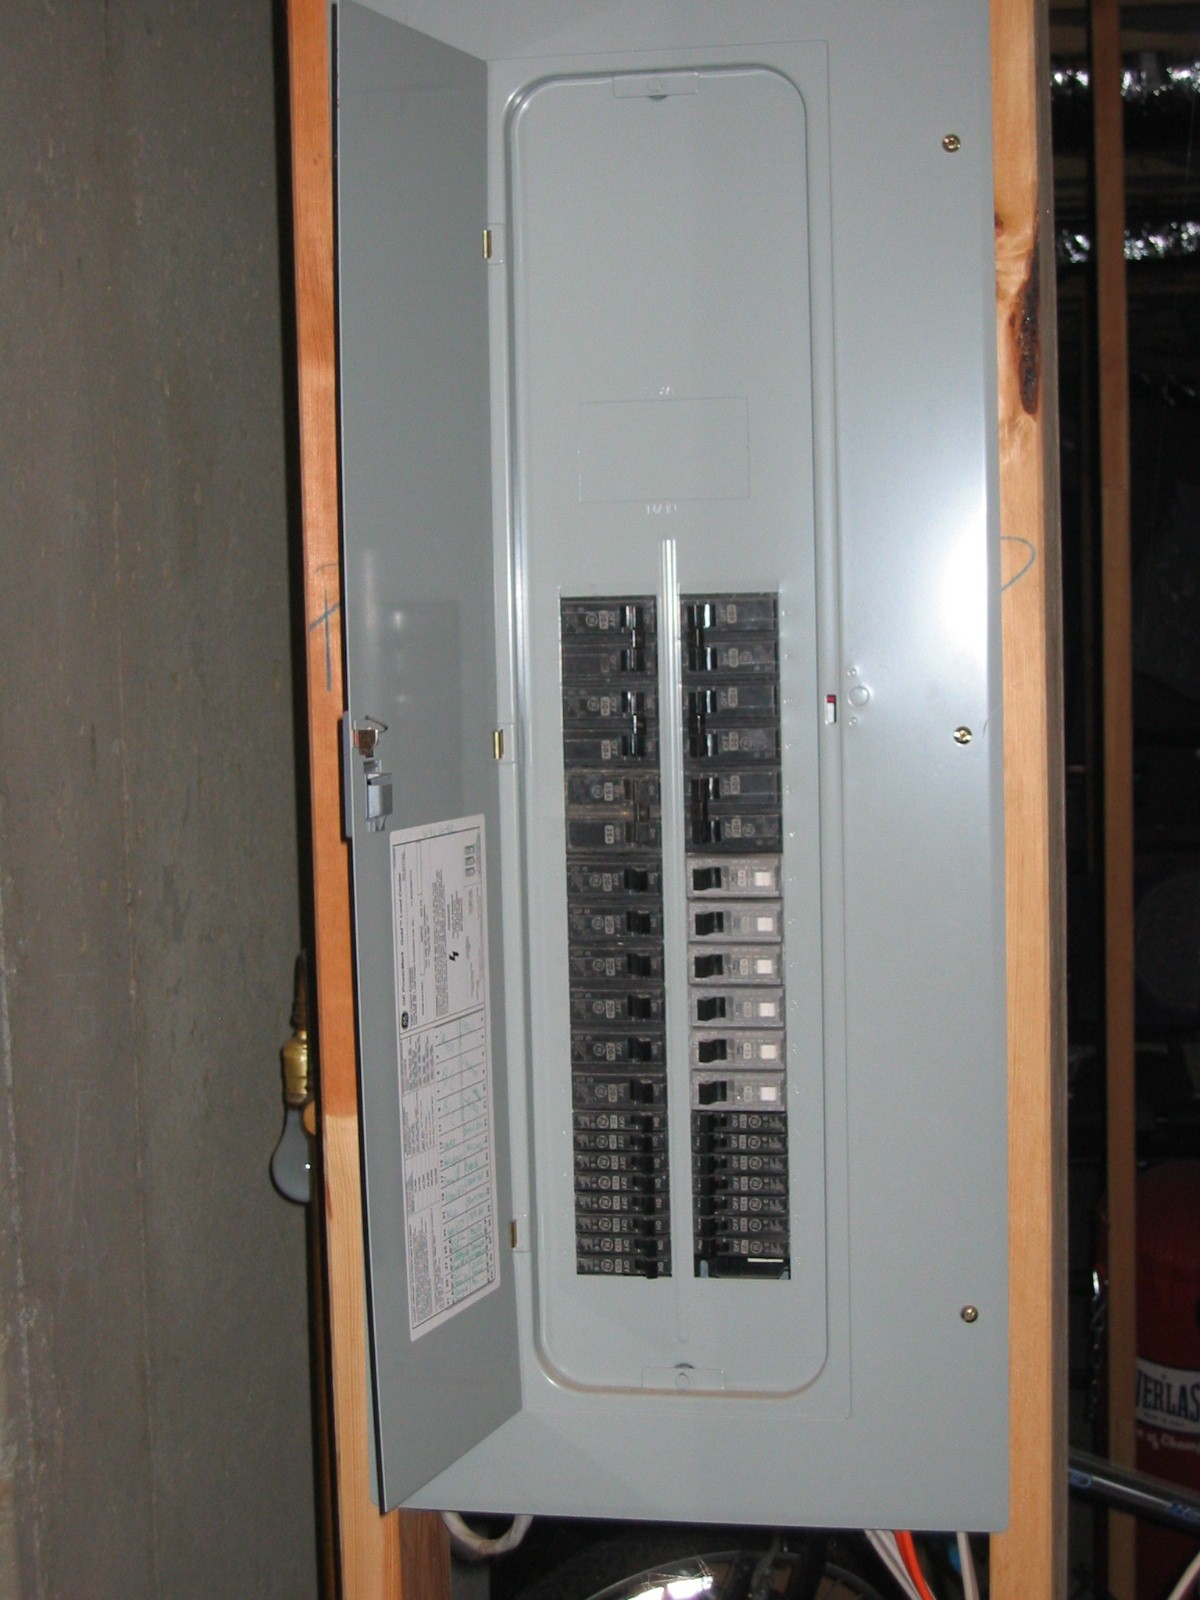 Figure 11.14. 200-Amp Service Box